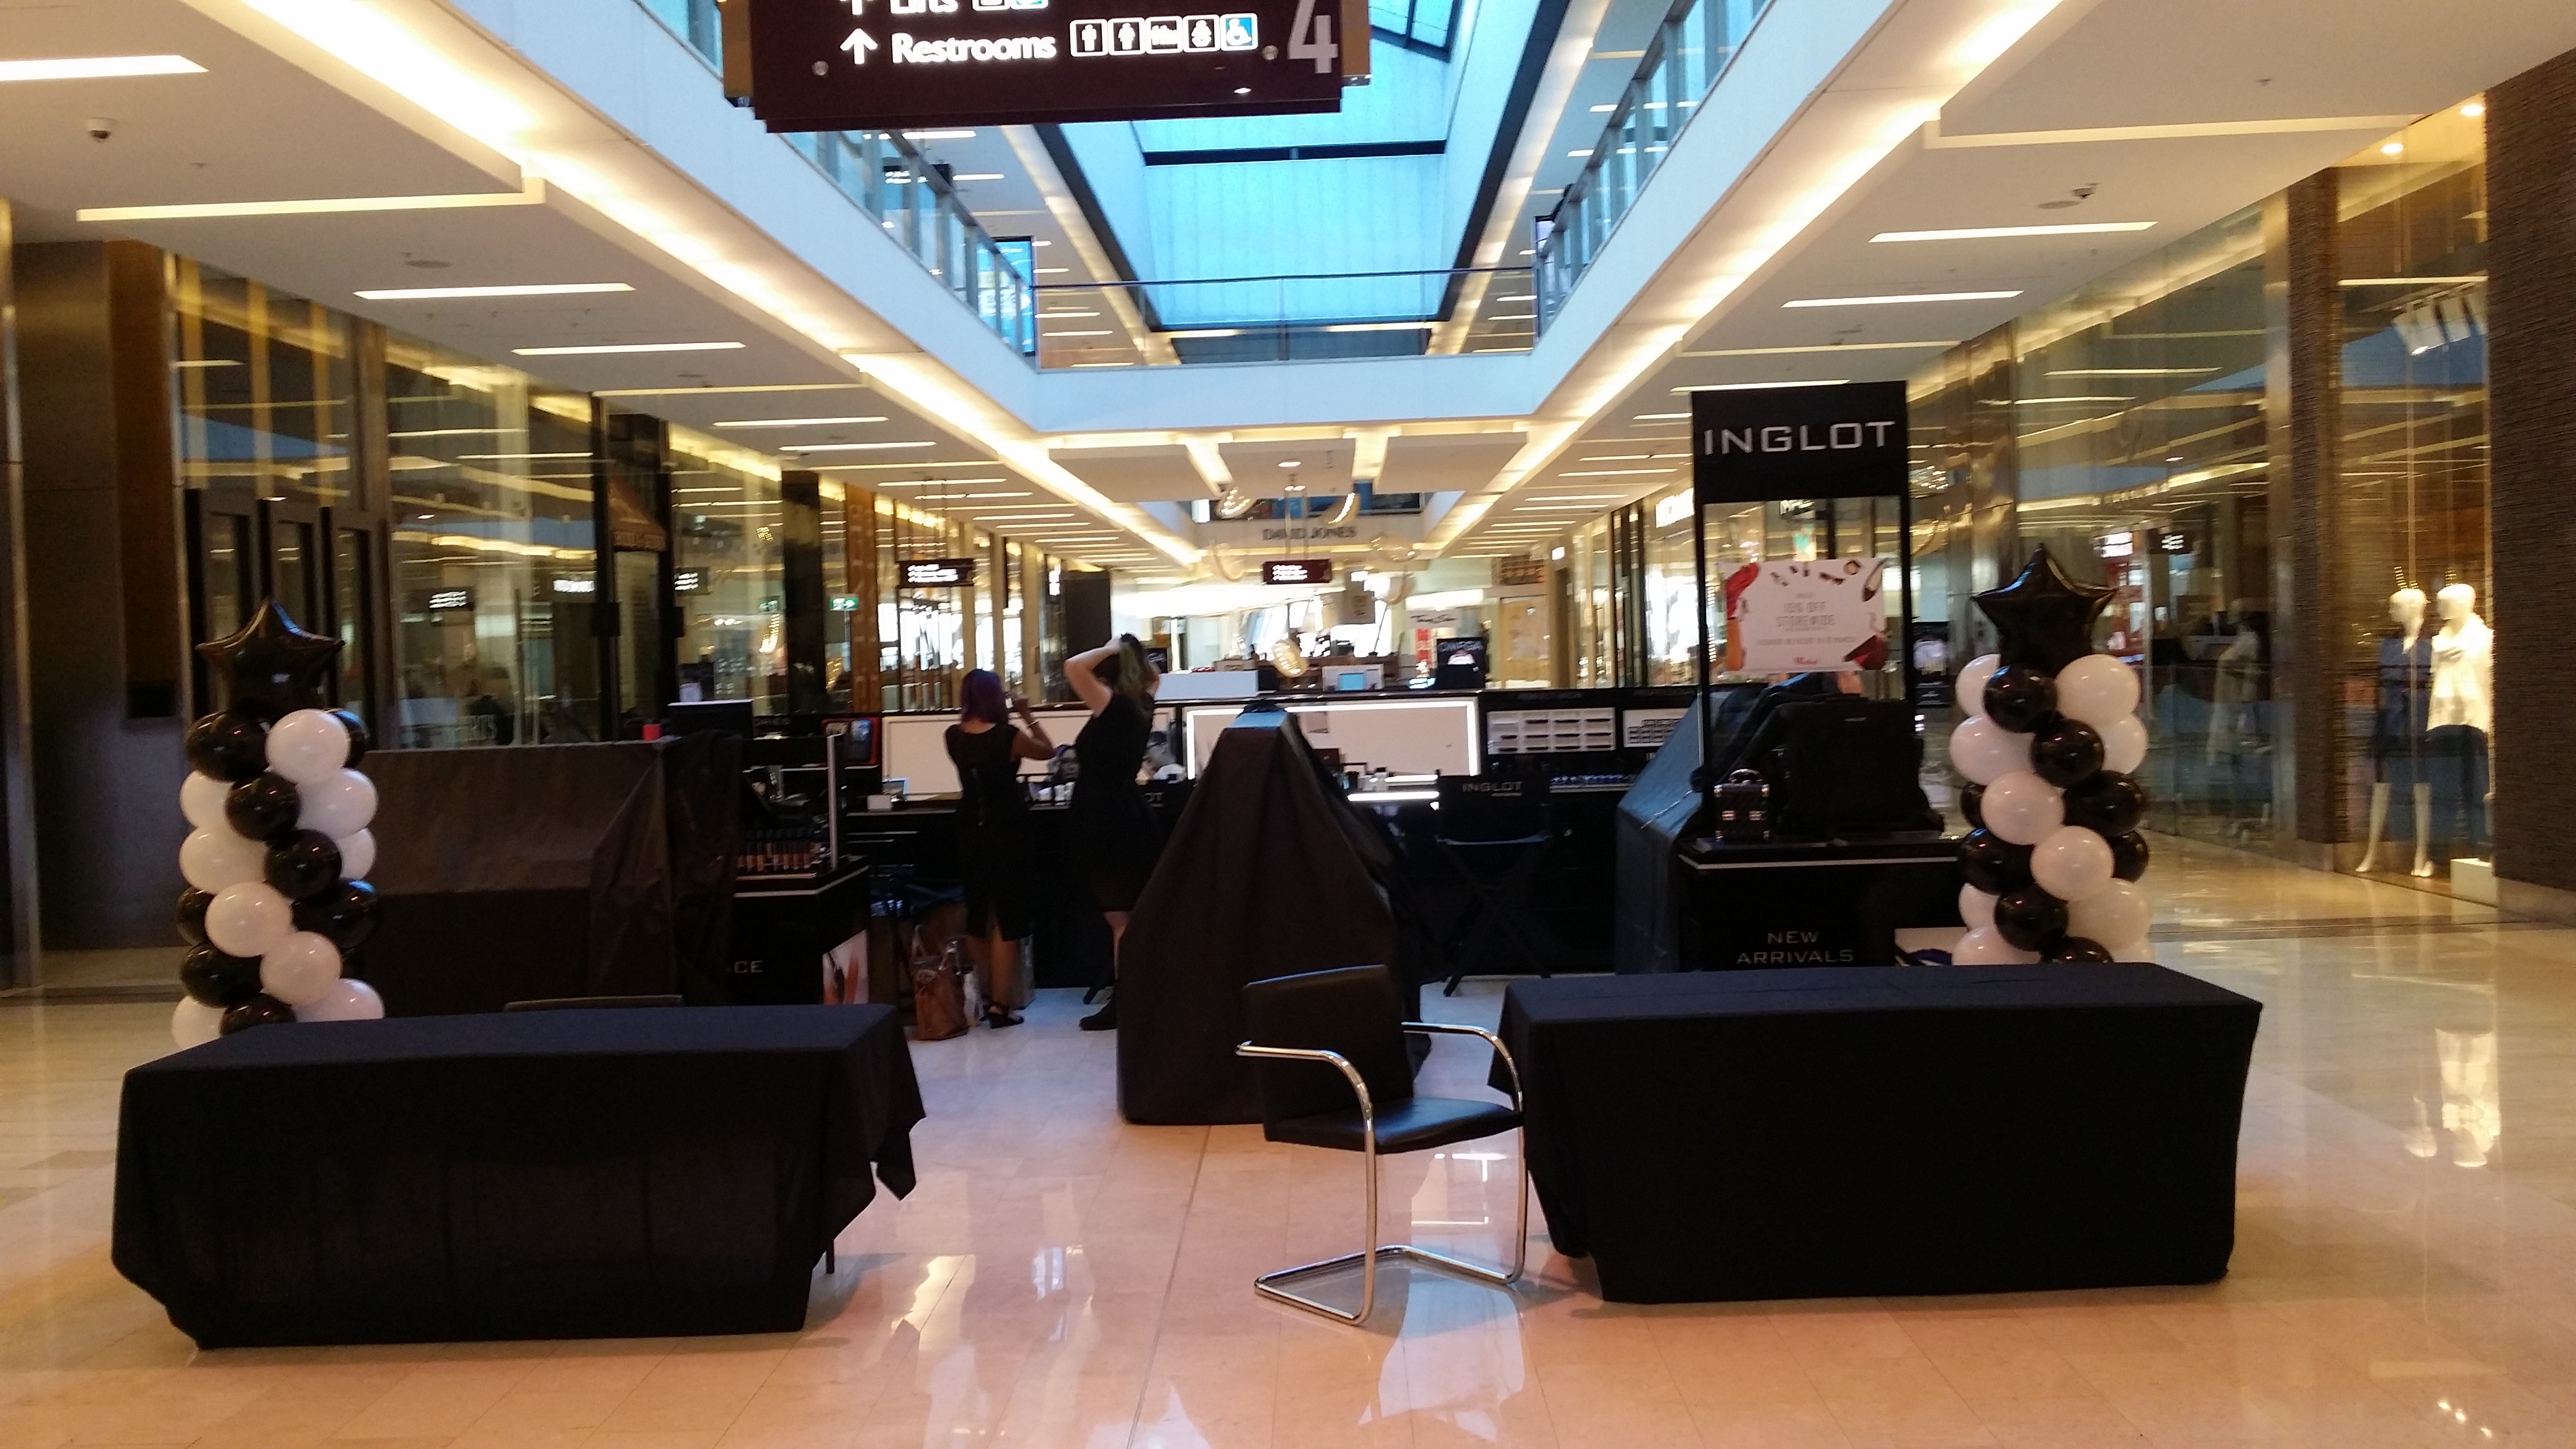 Store promotion inglot bondi junction - Specsavers head office contact number ...